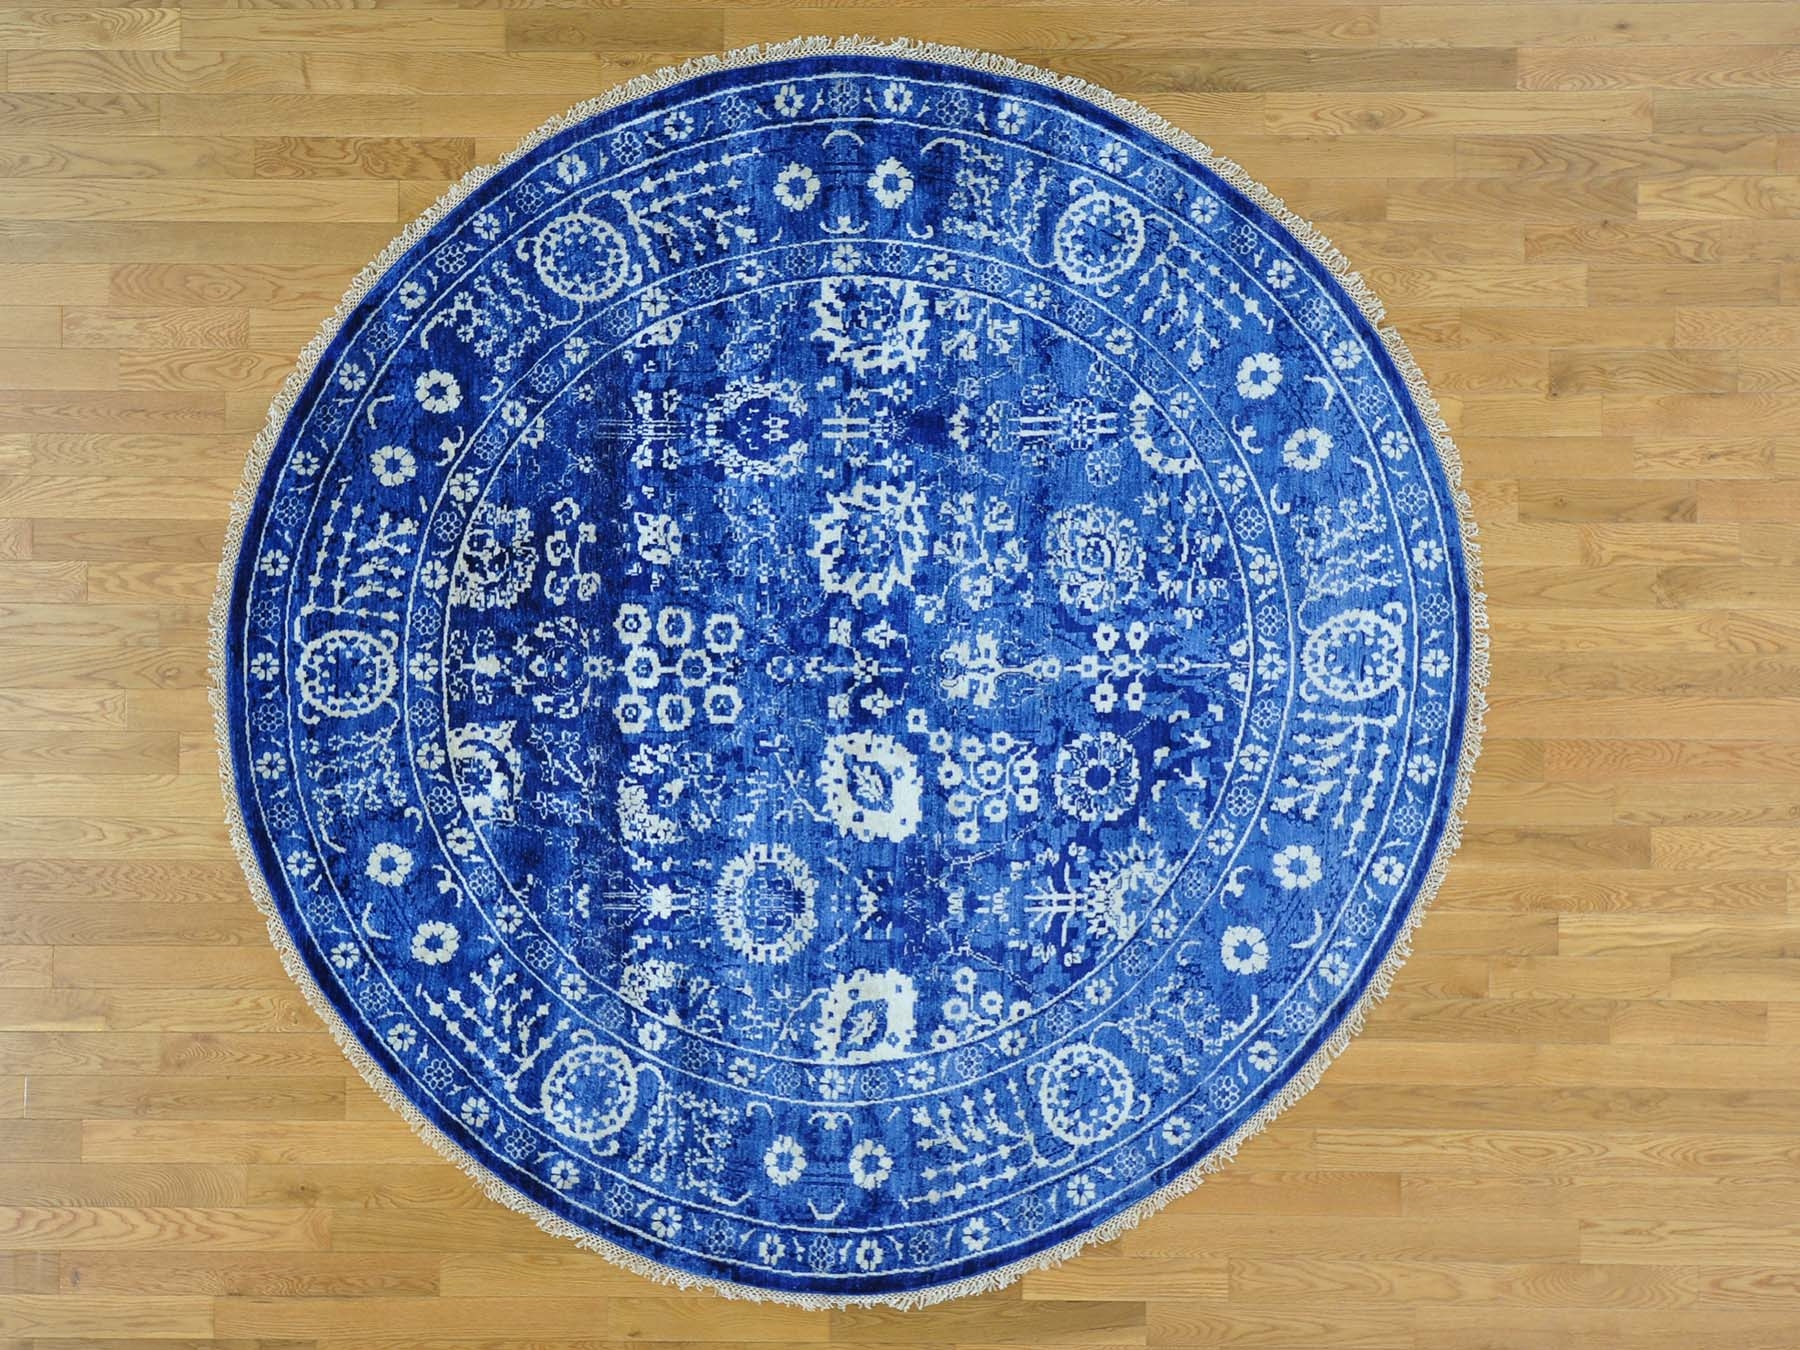 8 X 8 Round Wool And Silk Tone On Tone Tabriz Oriental Rug Within Round Wool Rugs (Photo 4 of 15)